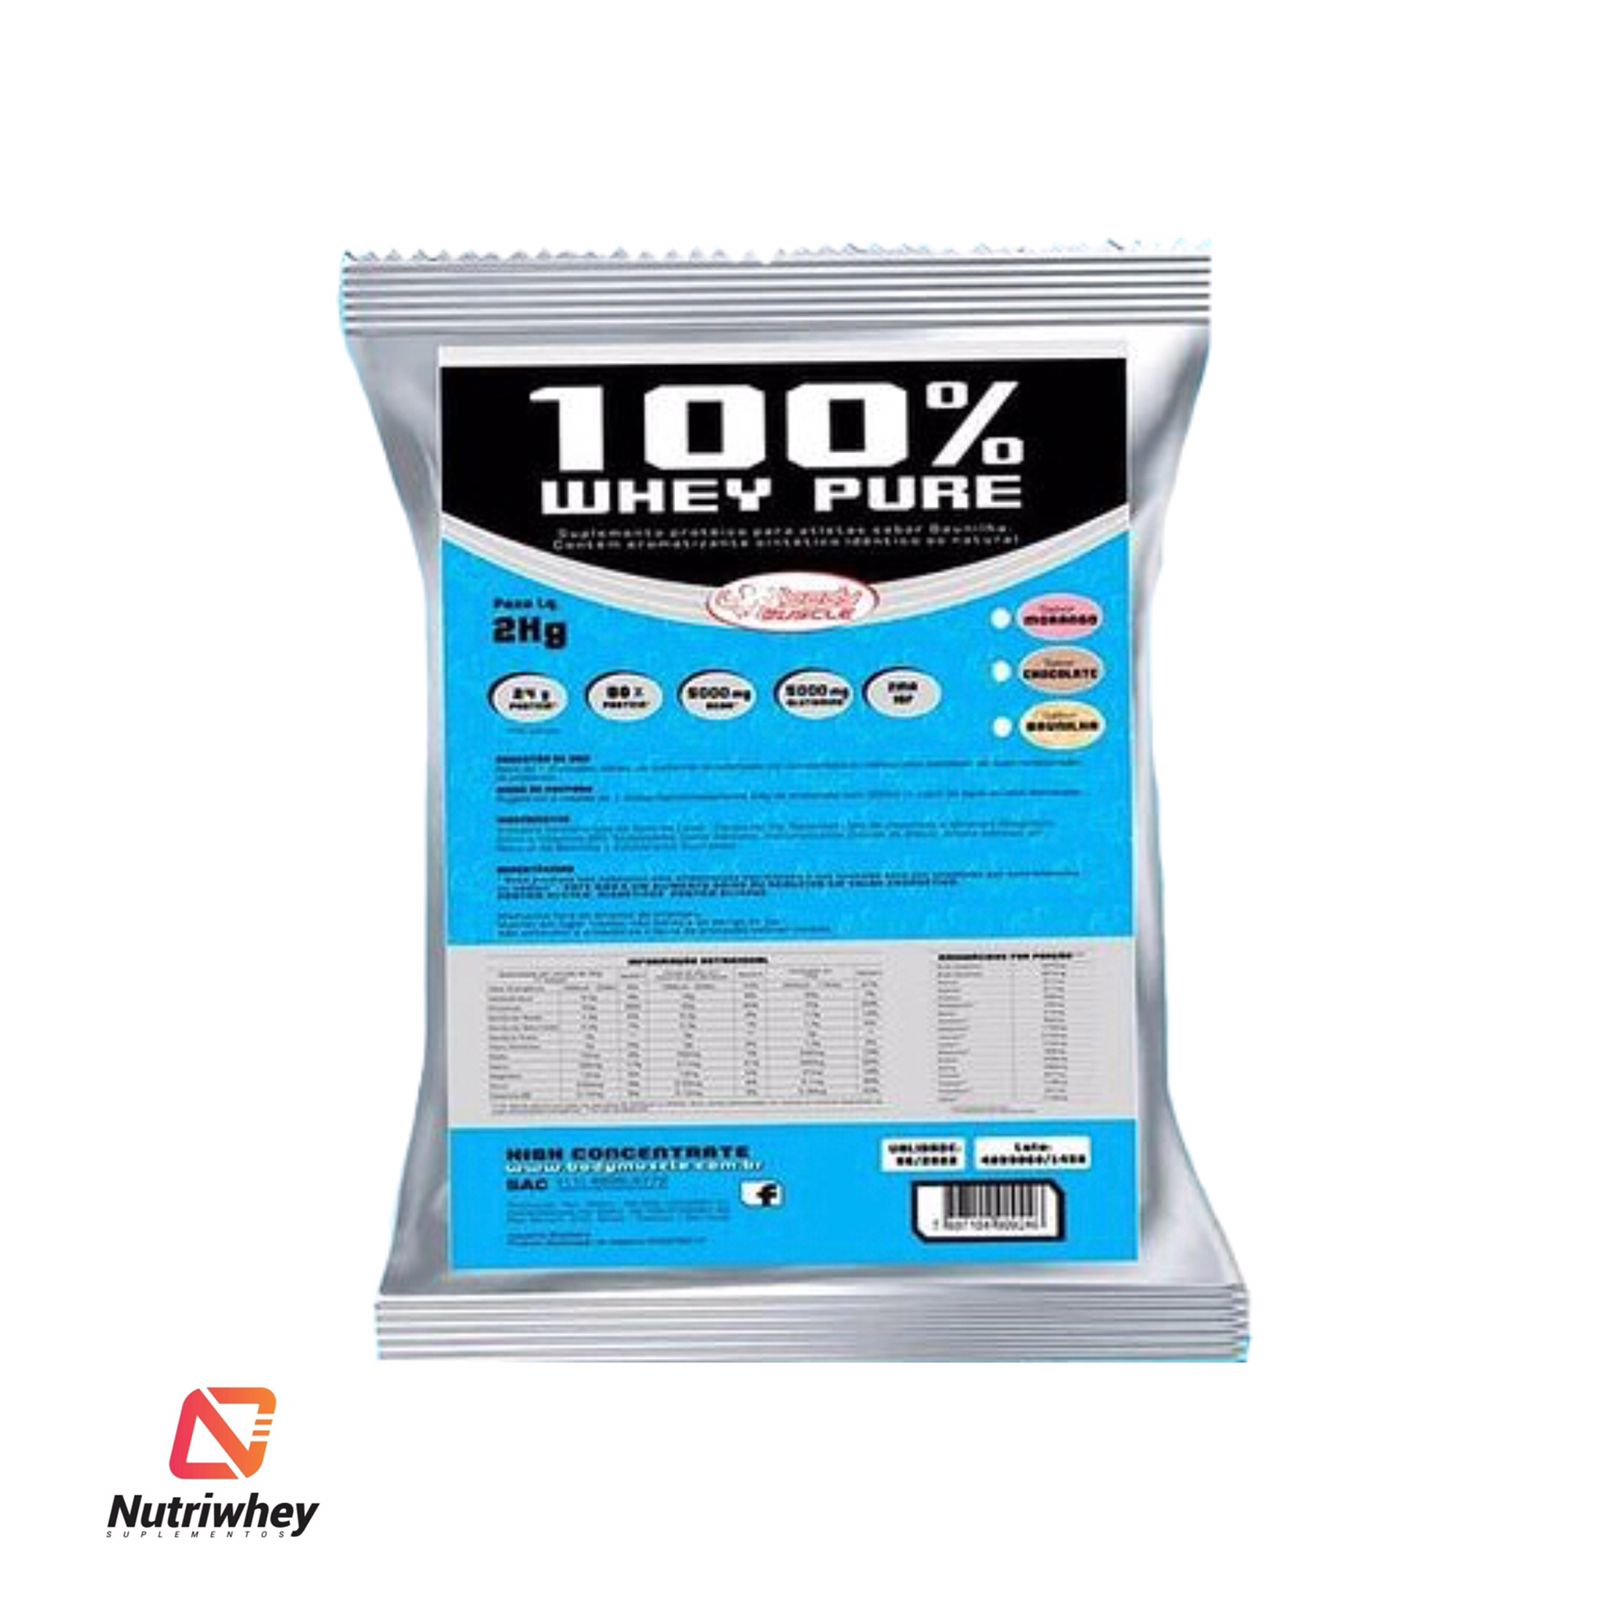 100% WHEY PURE - BODY MUSCLE